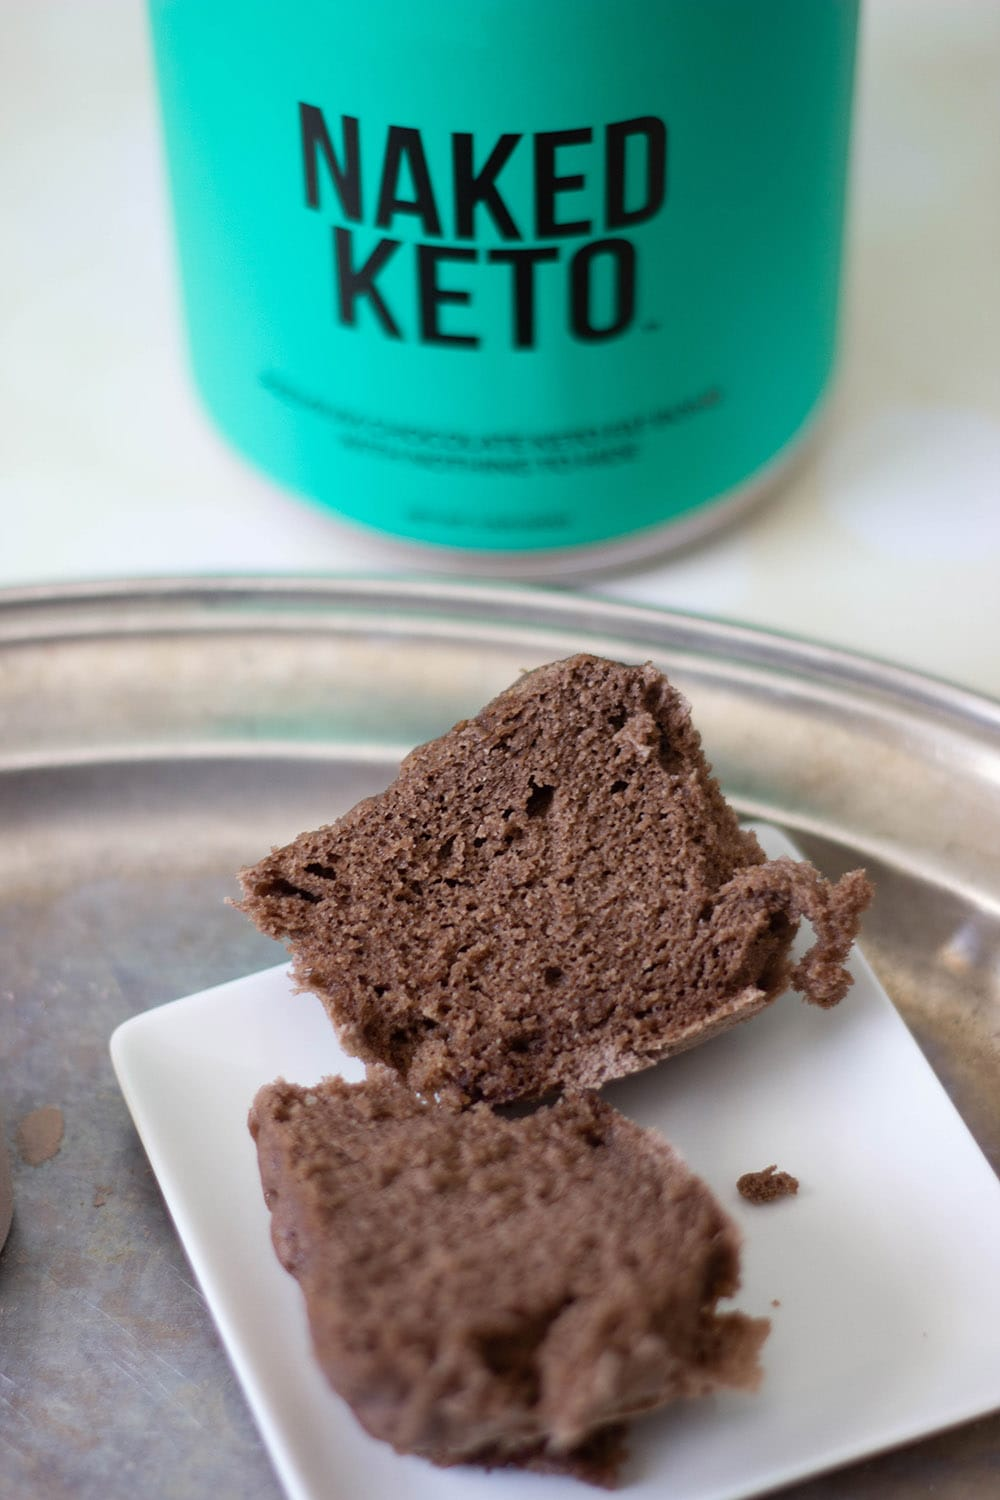 sliced keto cake